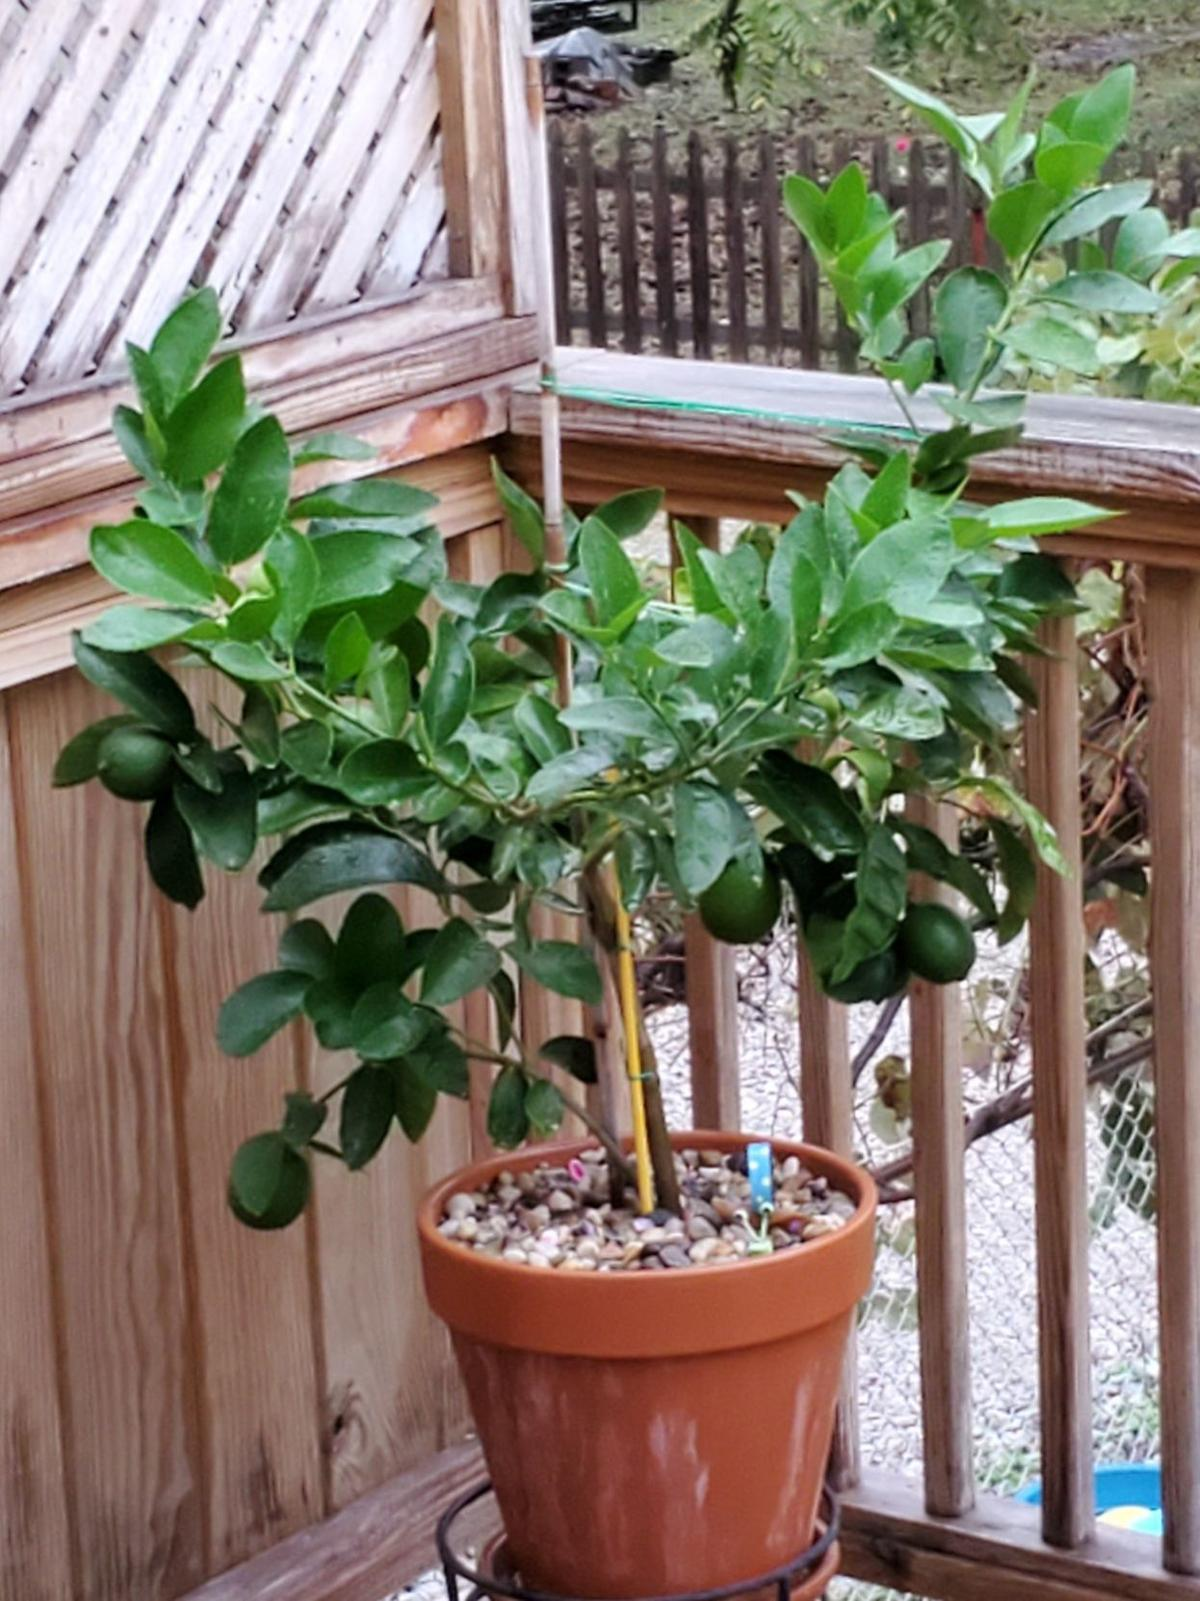 20191110-gm-good-to-grow-Chris's lime tree photo.jpg